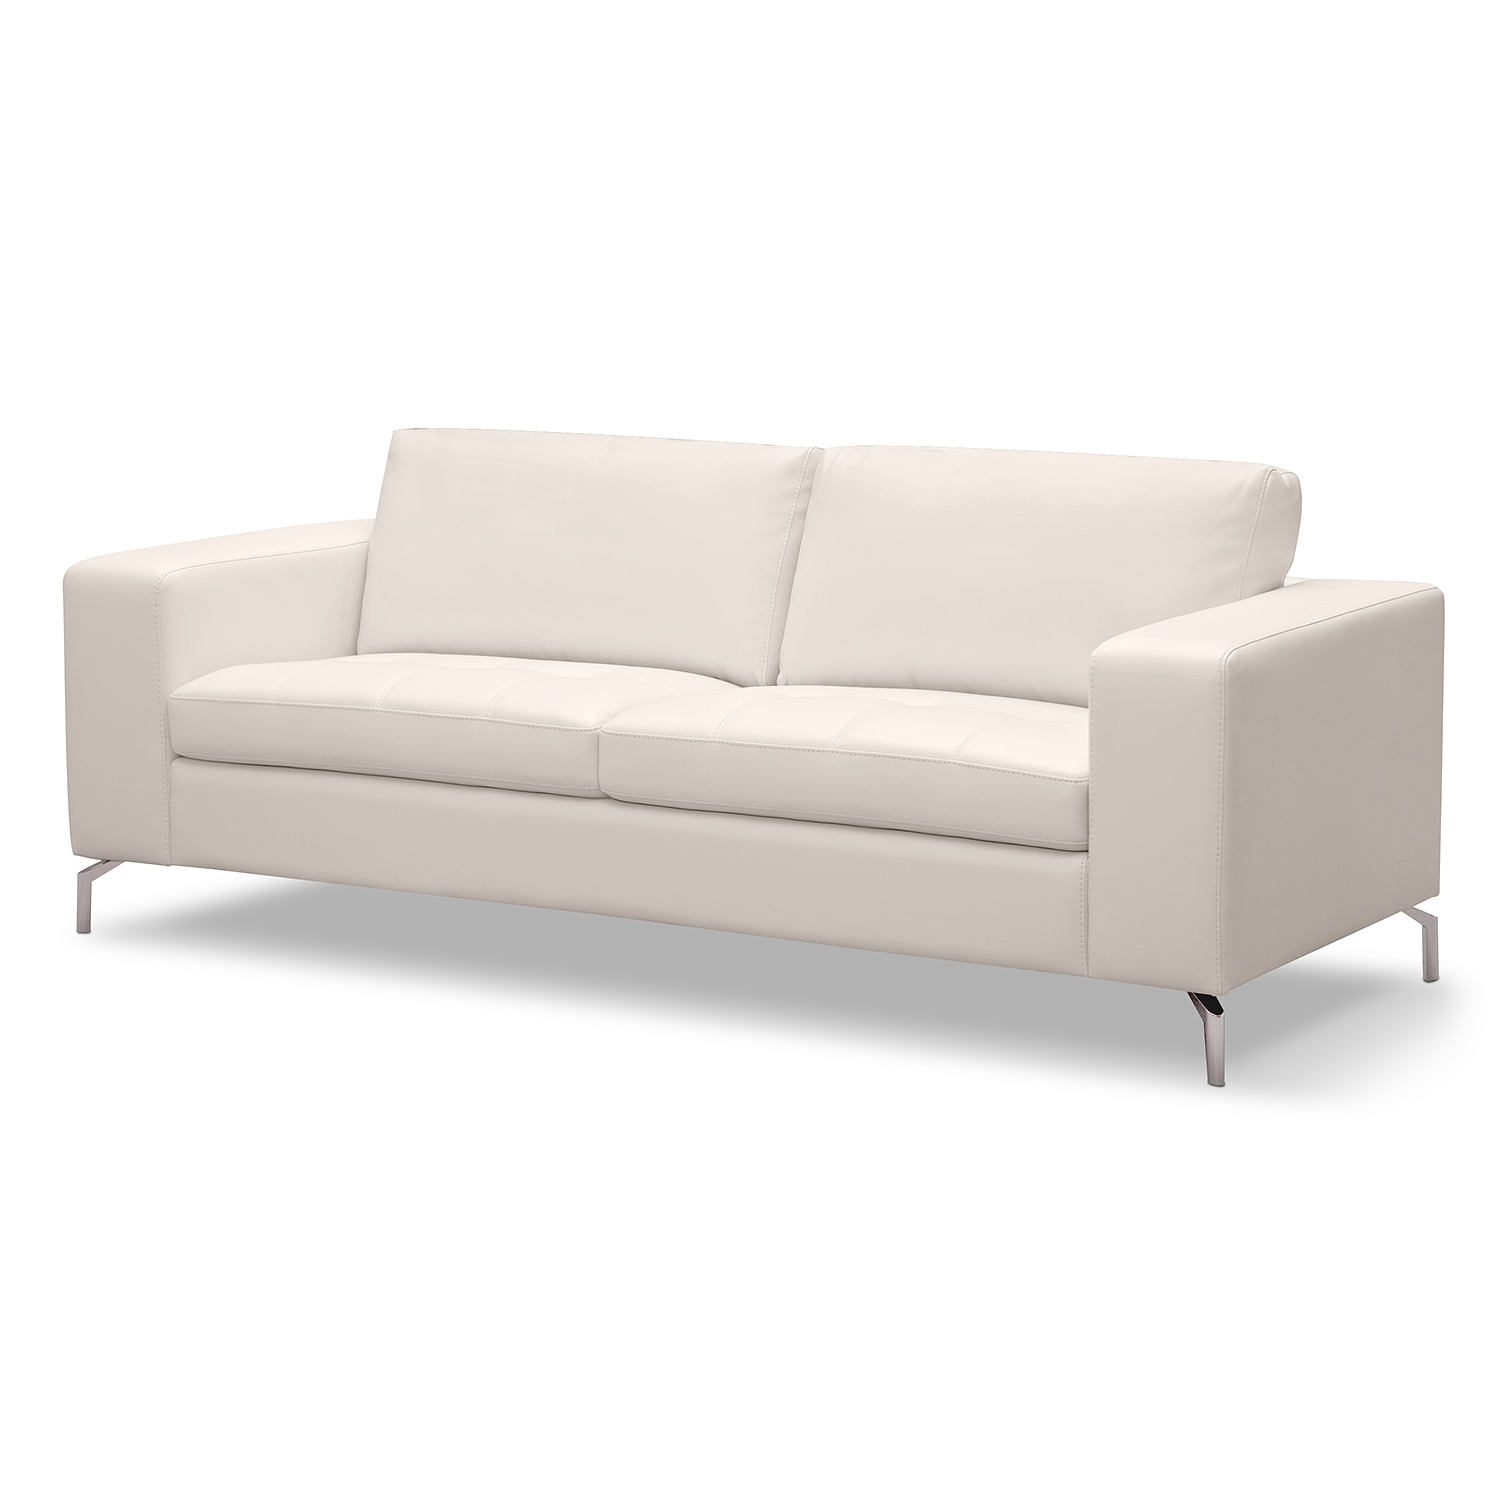 Casino Leather Sofa – American Signature Furniture (Main Living Throughout Most Recently Released White Sofa Chairs (View 4 of 20)